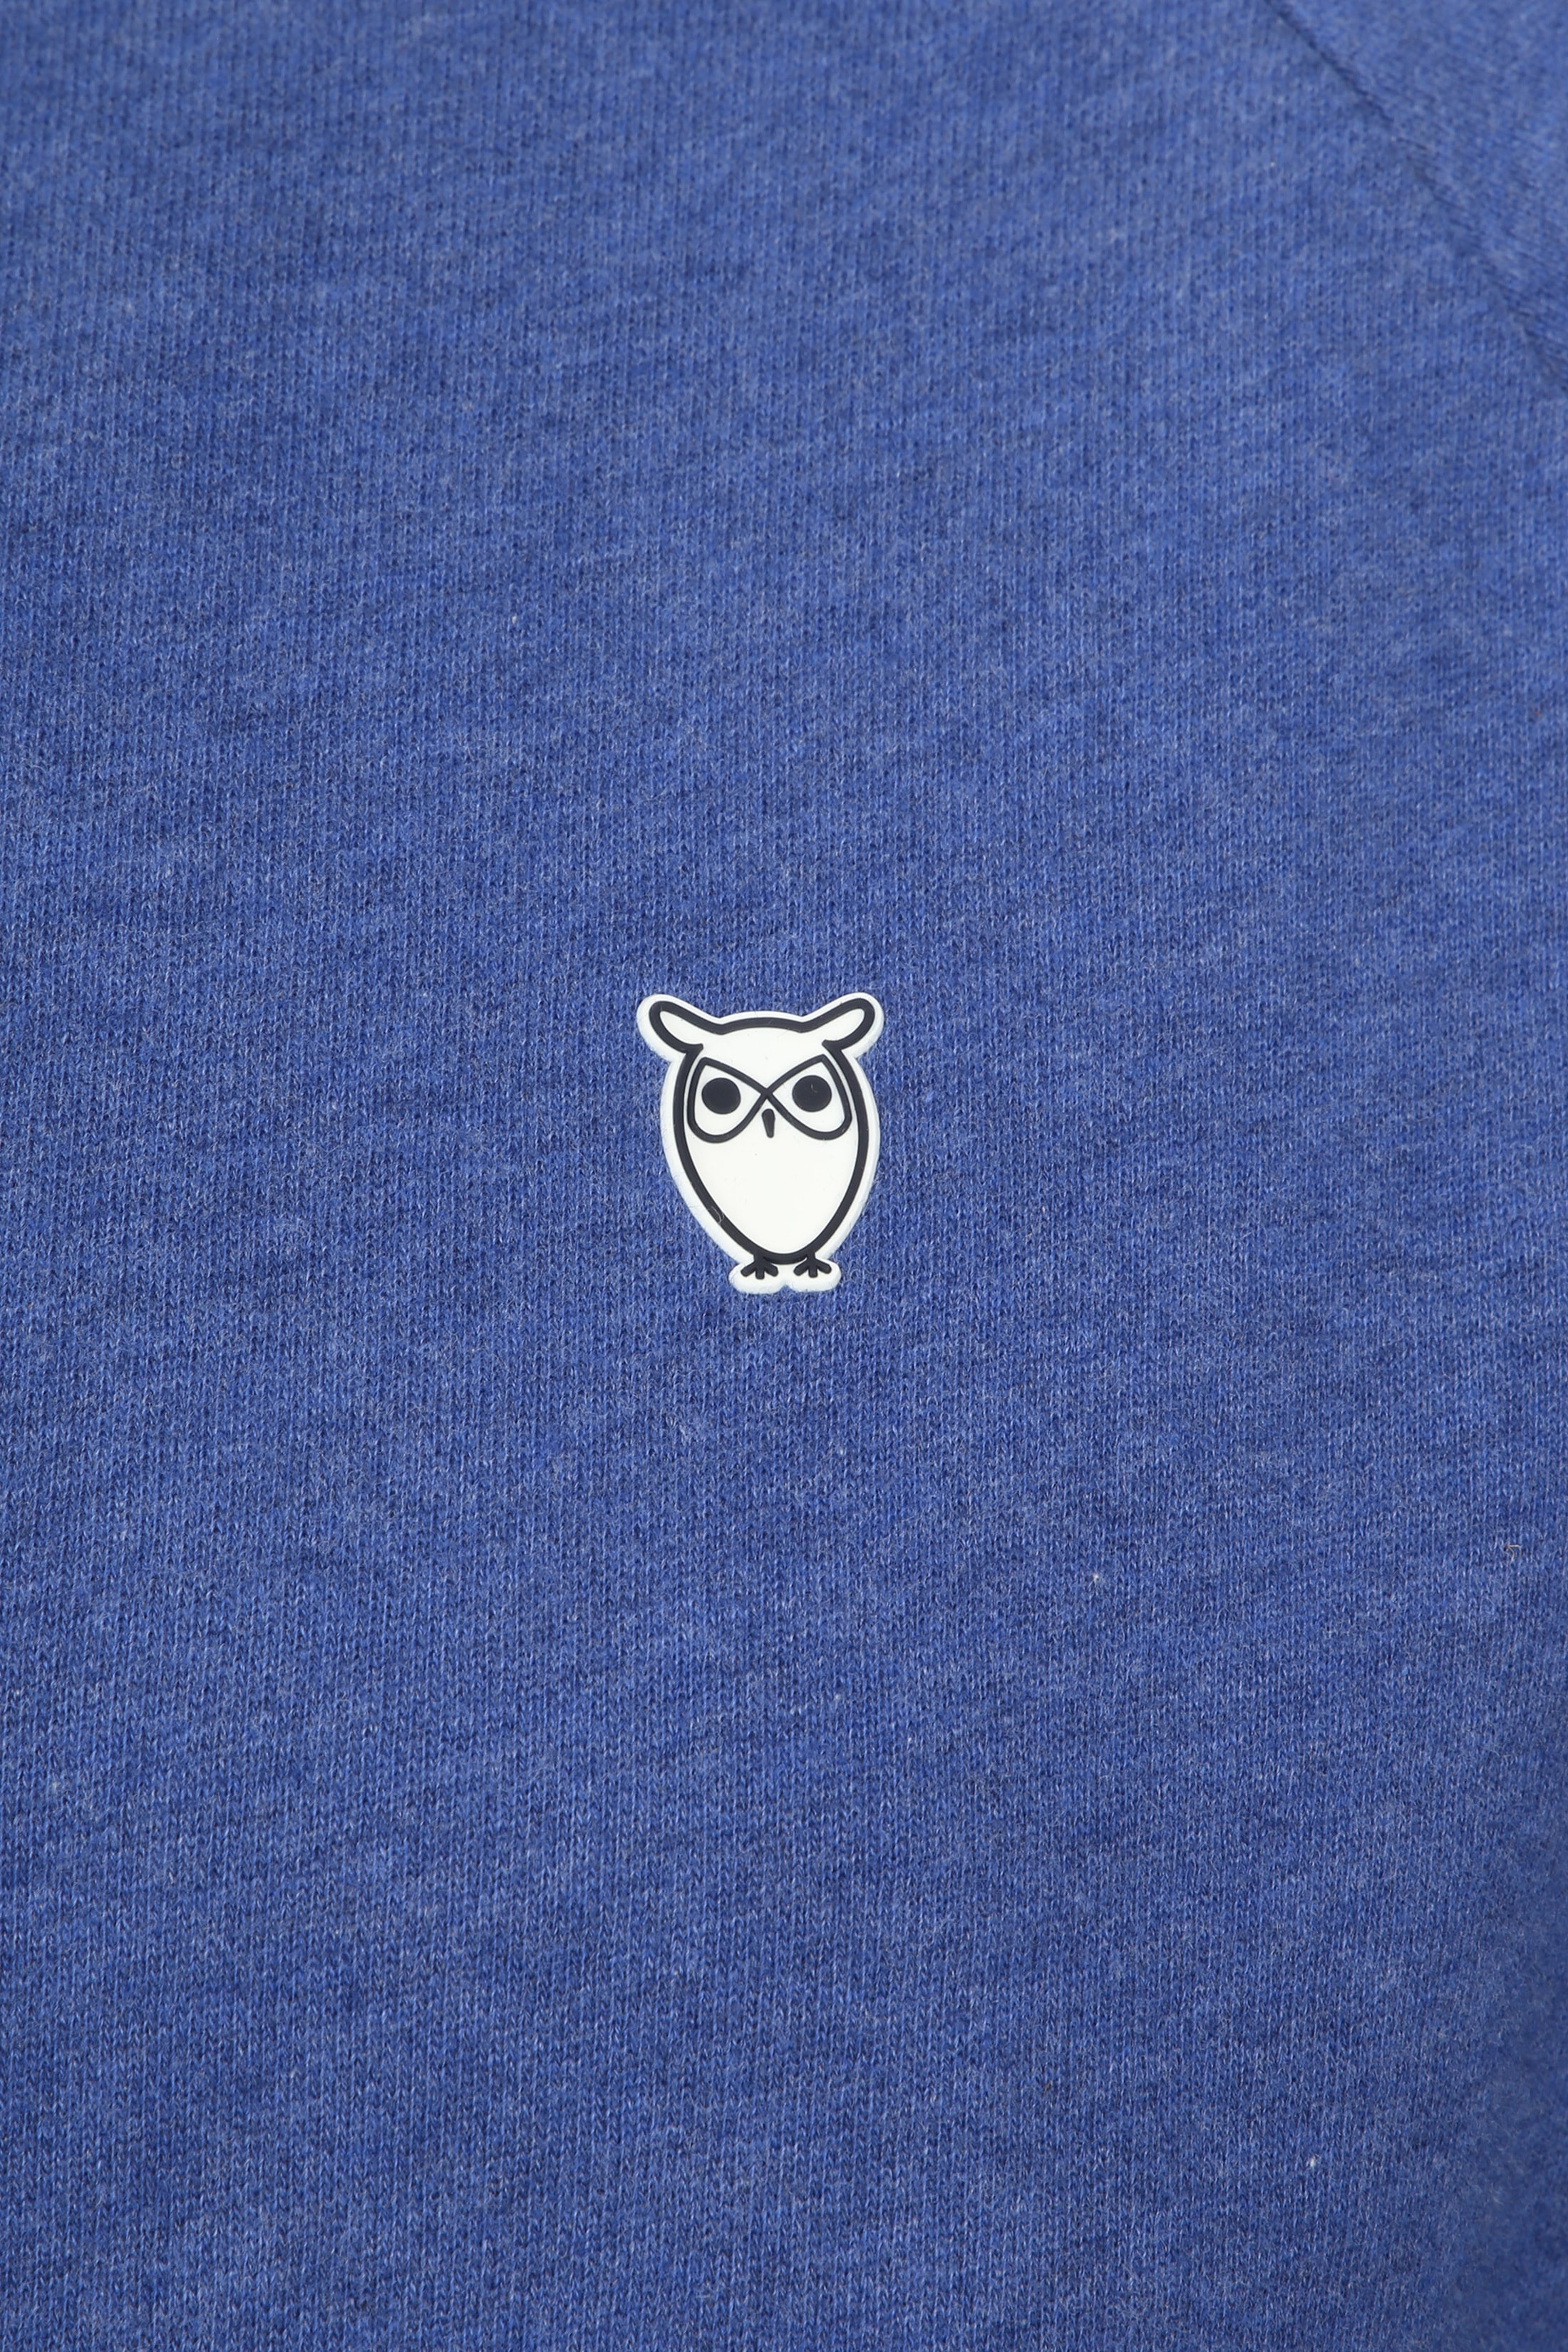 Knowledge Cotton Apparel Trui Blauw foto 1